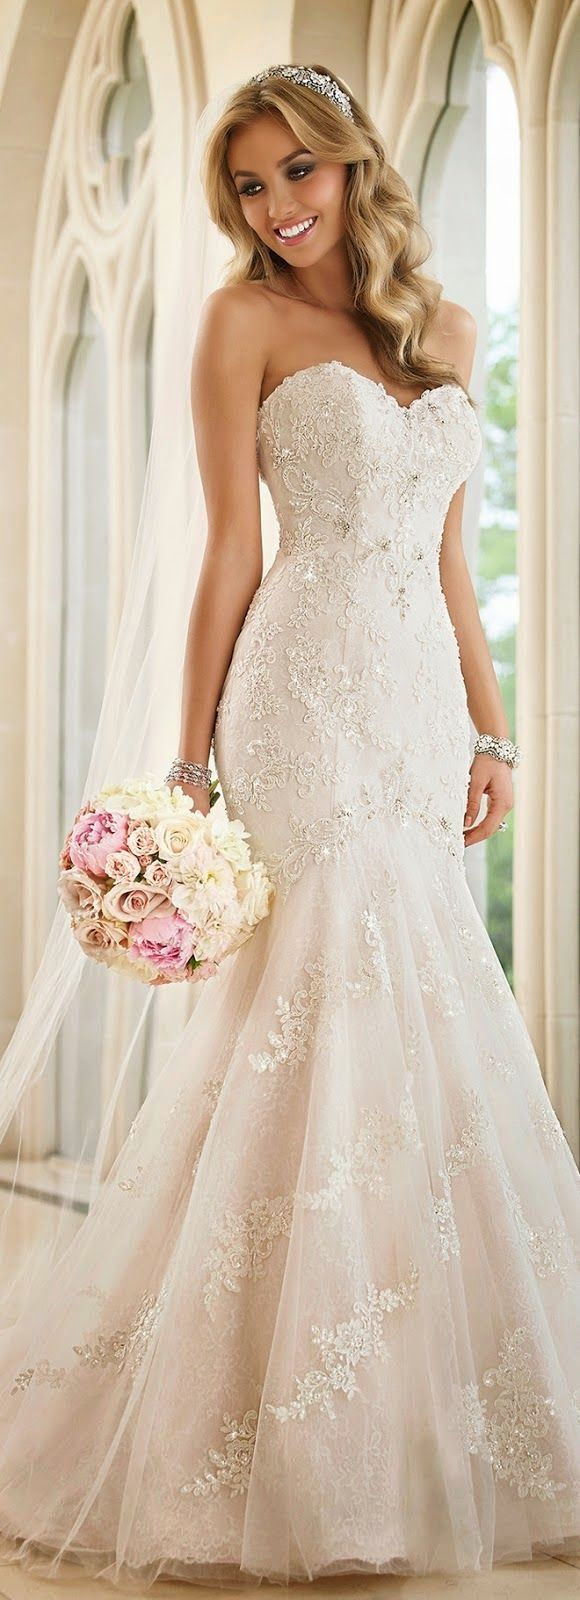 Top 5 Outstanding Weeding Dresses - love this one very gorgeous